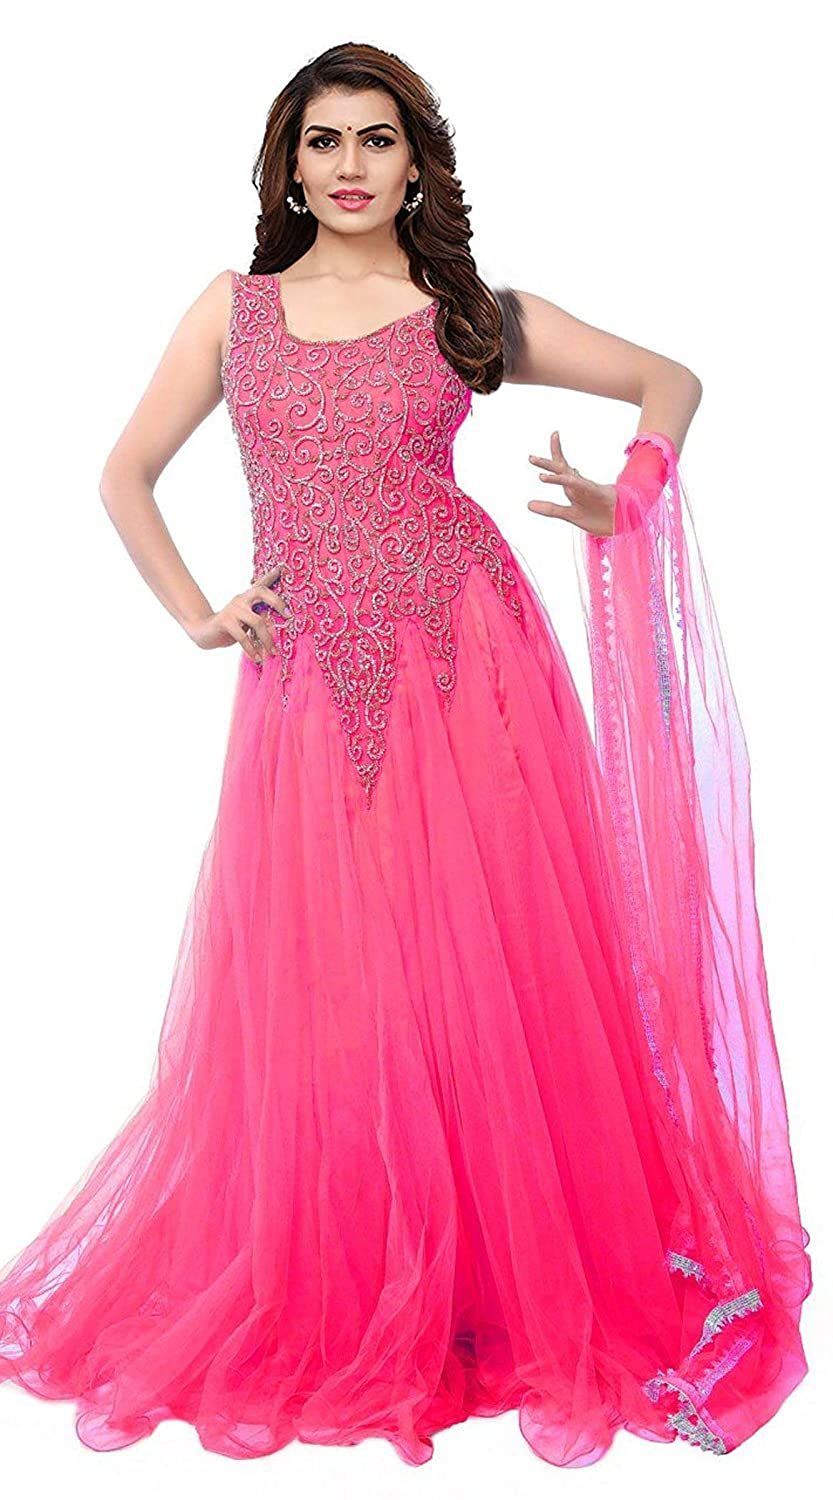 Buy Vkaran Net Gown Gc002 New Pink Free Size At Amazon In